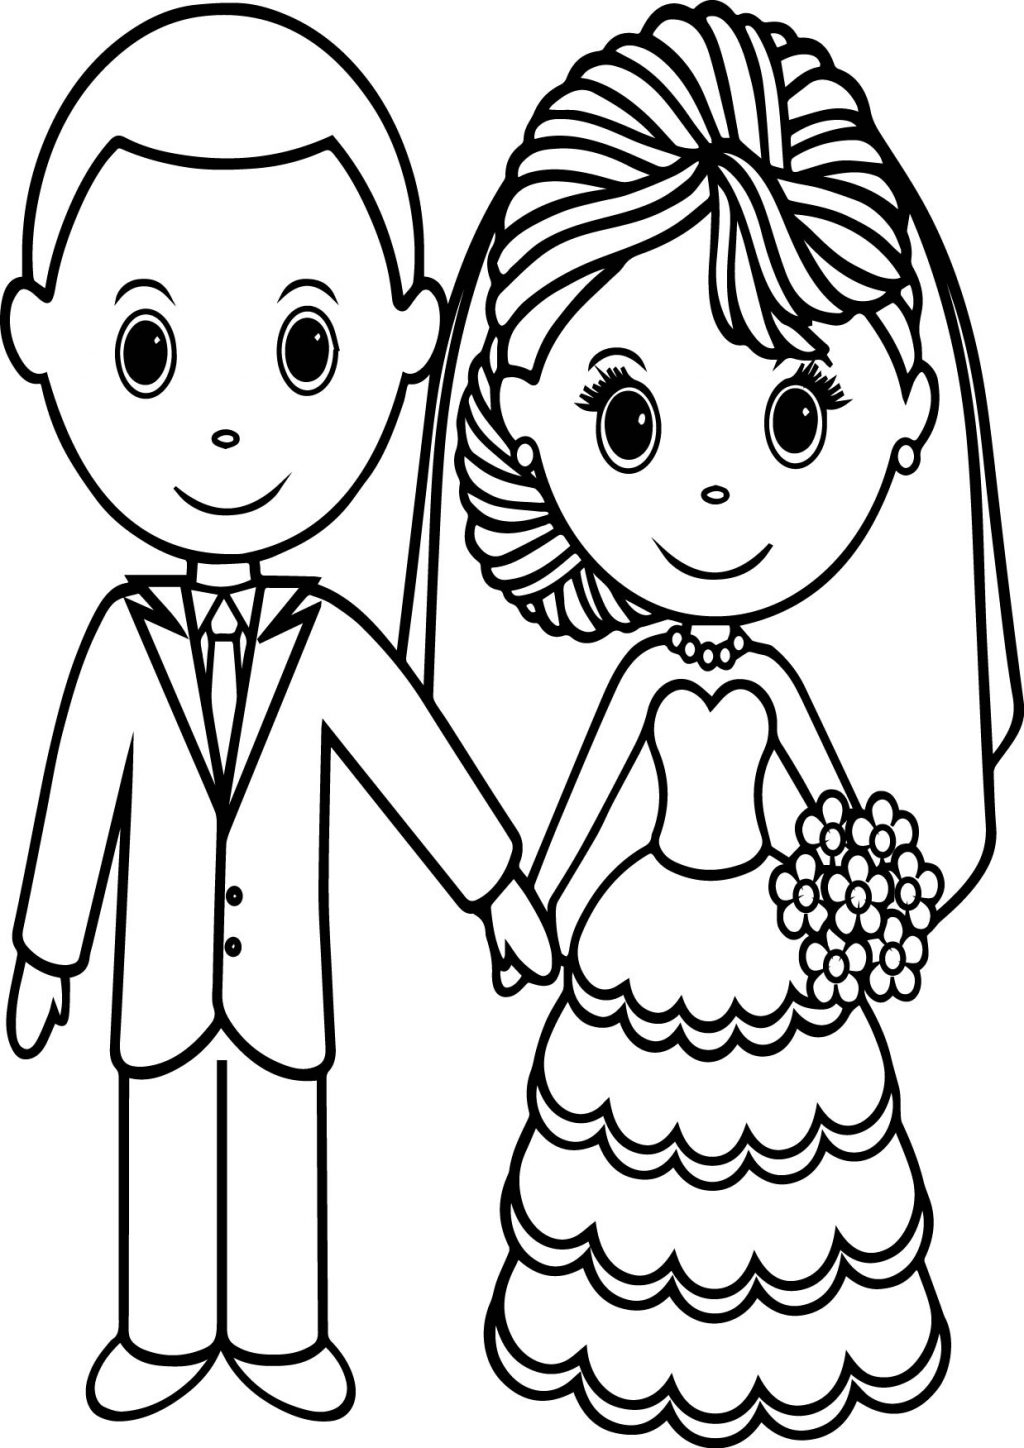 wedding coloring sheets wedding coloring pages for download wedding coloring wedding coloring sheets